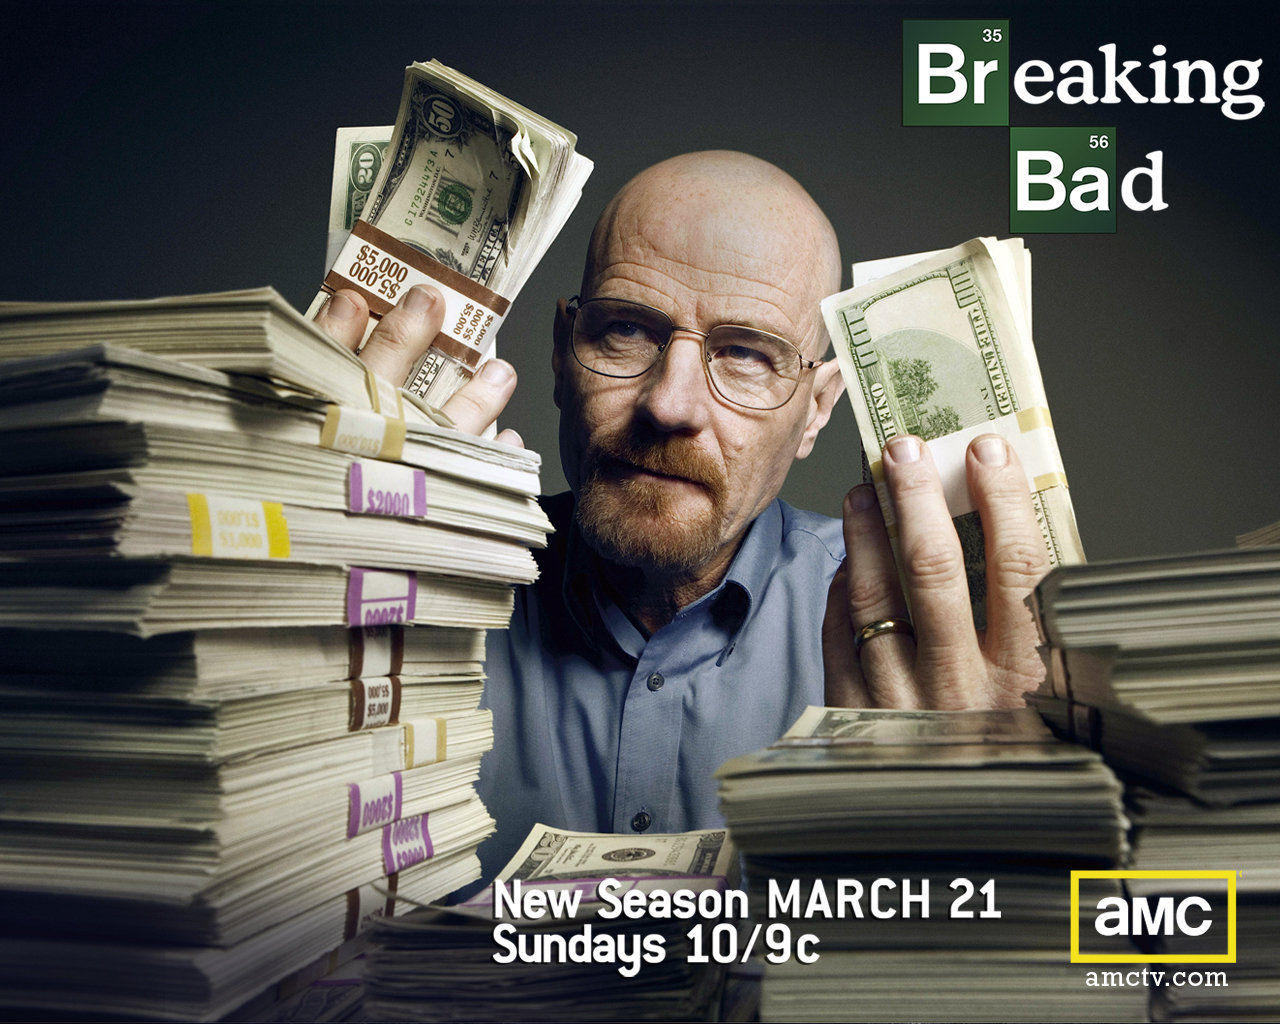 Download HQ A Breaking Bad wallpaper / TV Serials / 1280x1024